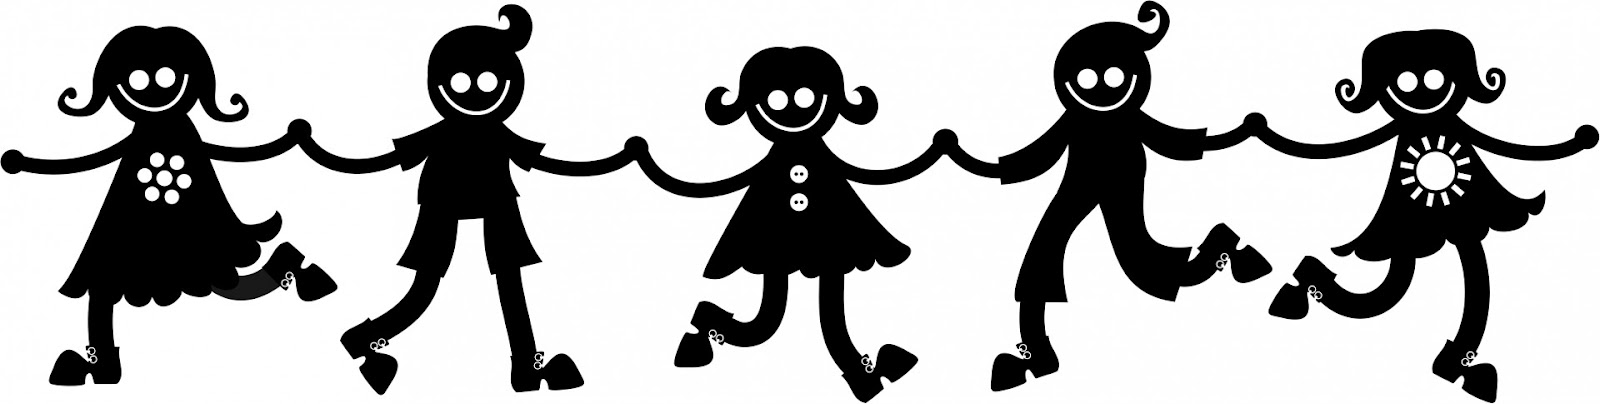 Silhouette Kids Holding Hands Free Stock Photo - Public Domain ...